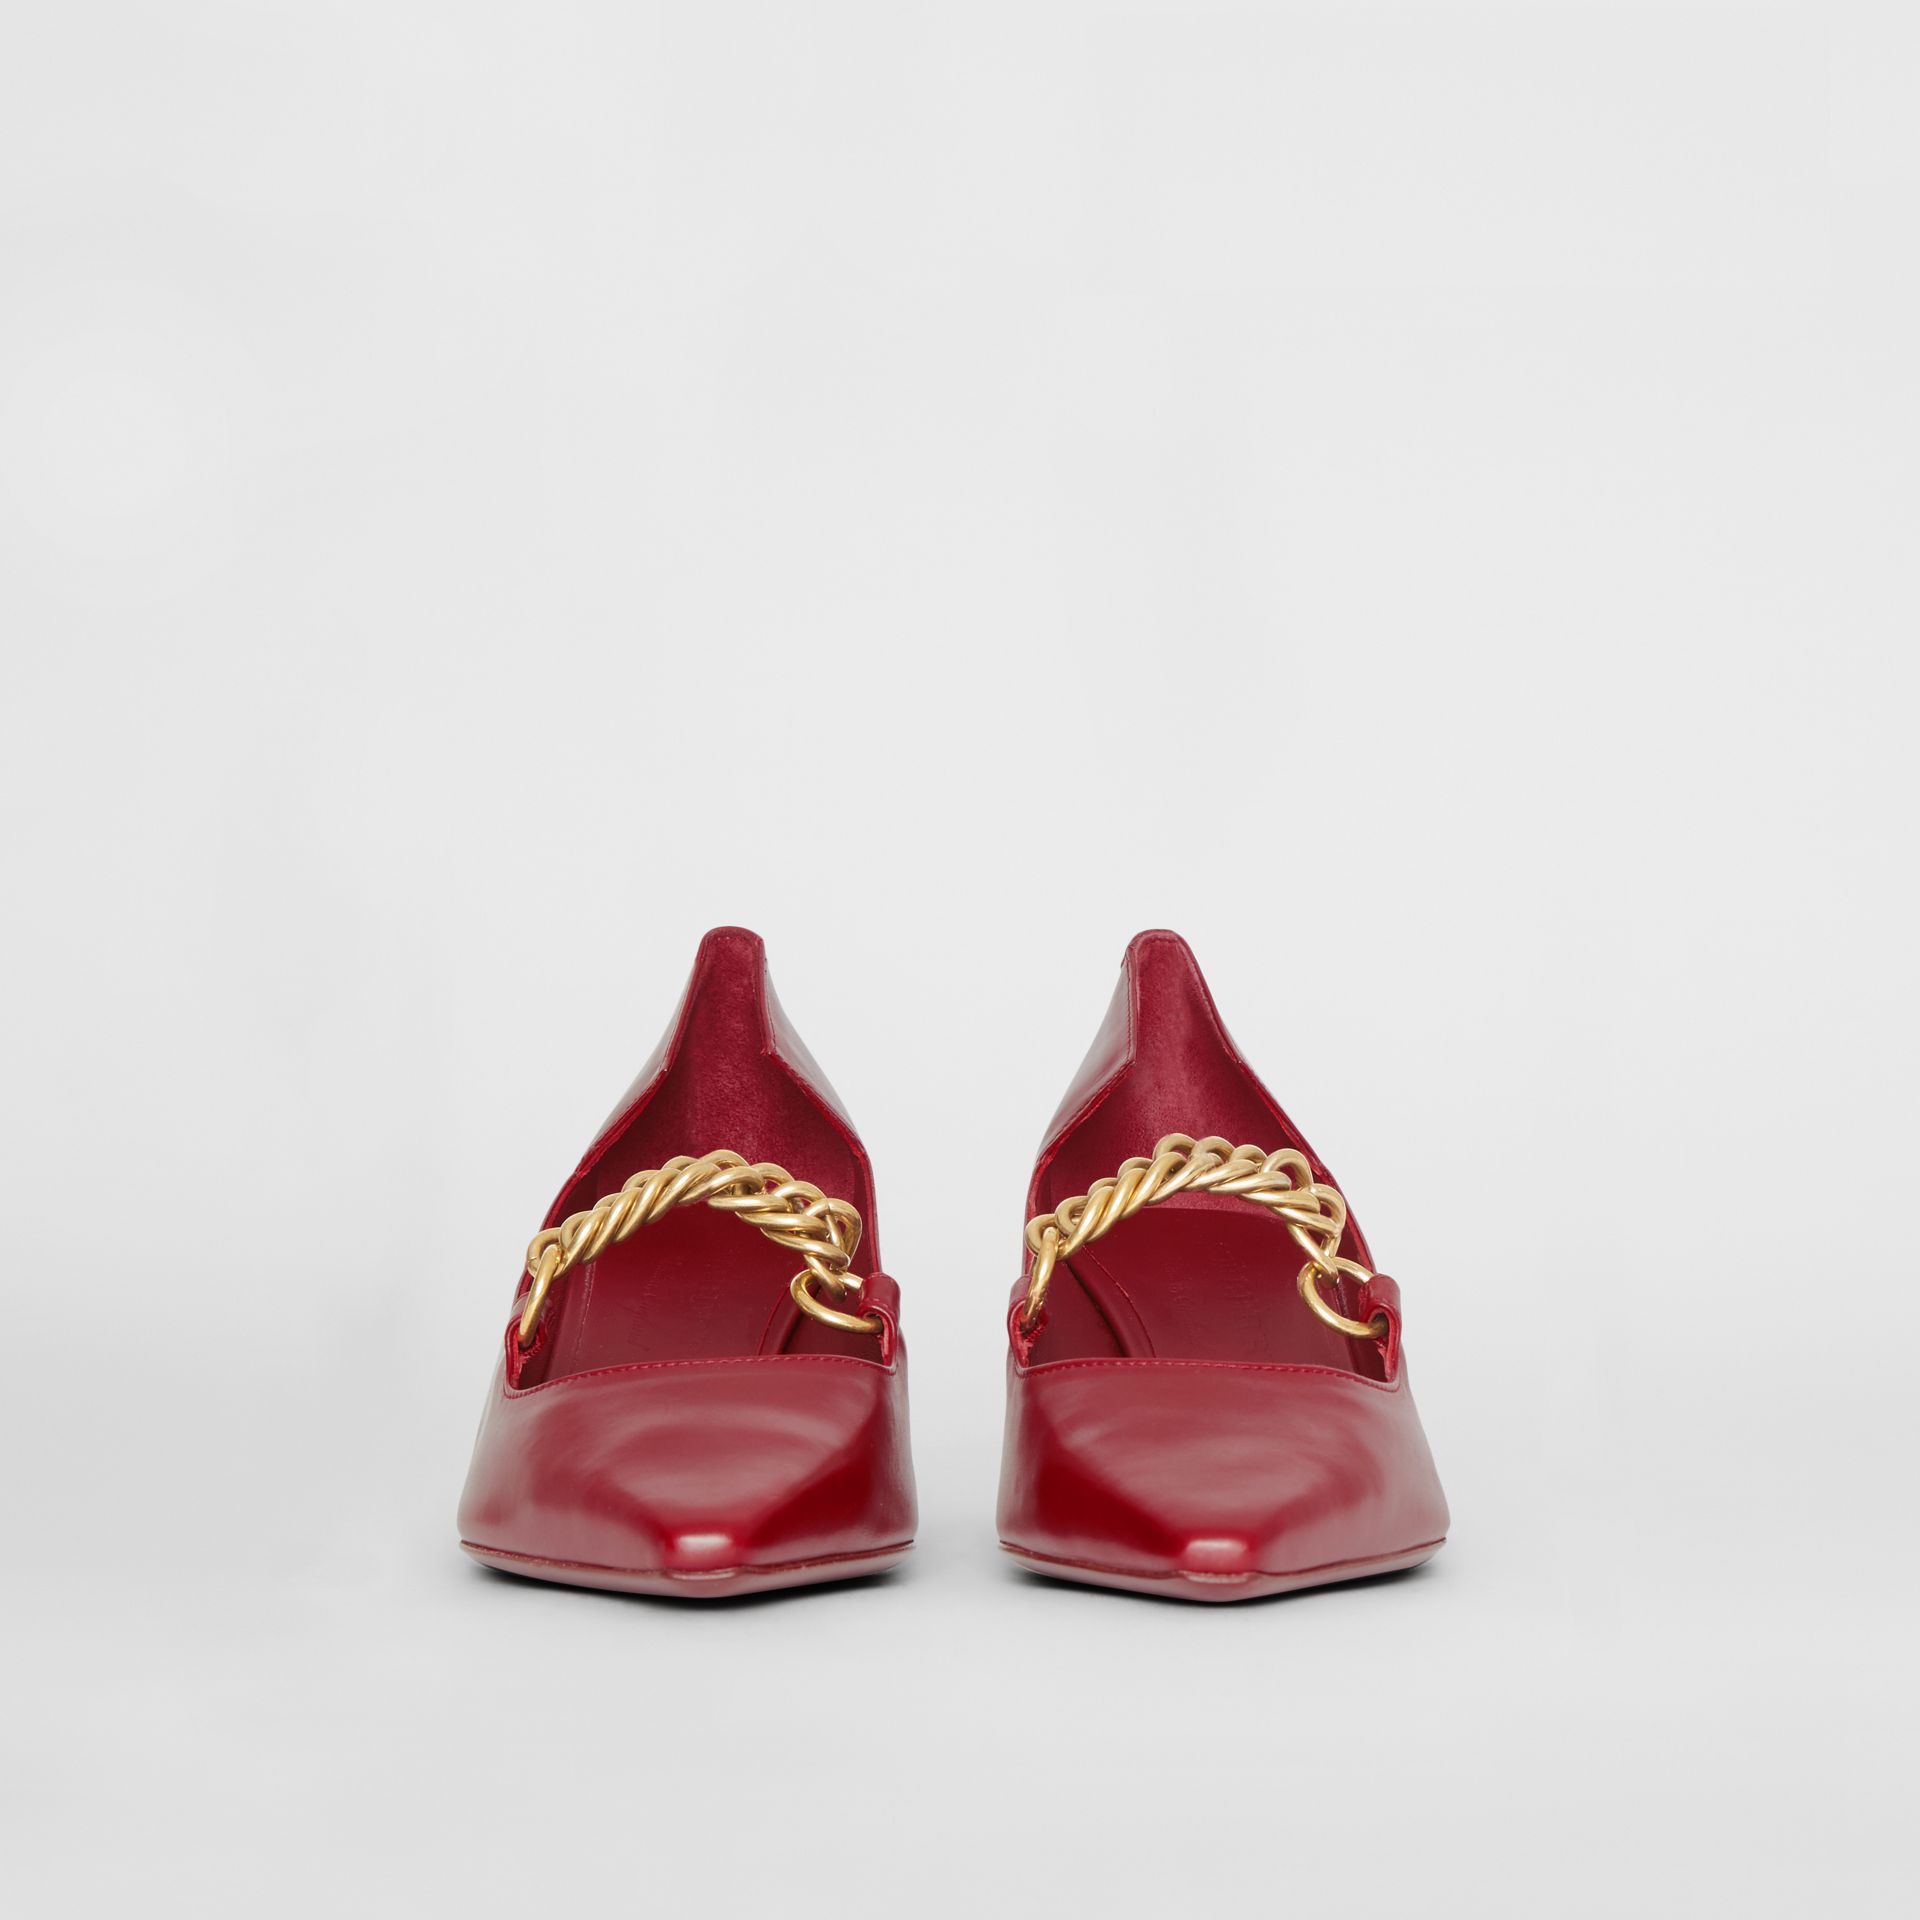 Link Detail Leather Point-toe Pump in Claret - Women | Burberry - gallery image 3